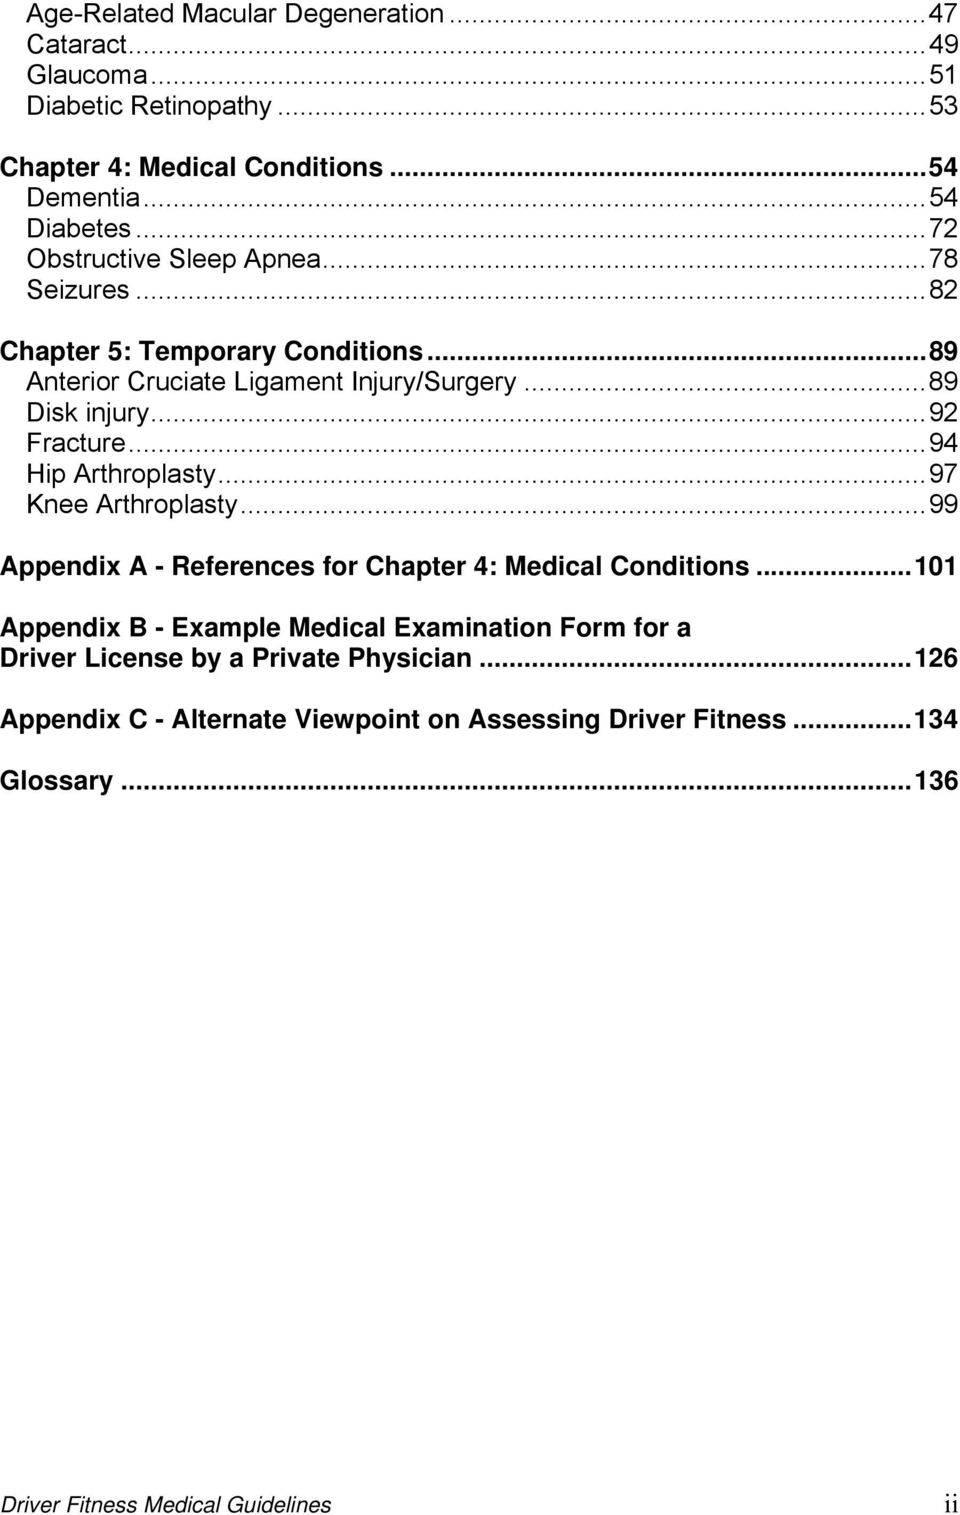 ..94 Hip Arthroplasty...97 Knee Arthroplasty...99 Appendix A - References for Chapter 4: Medical Conditions.